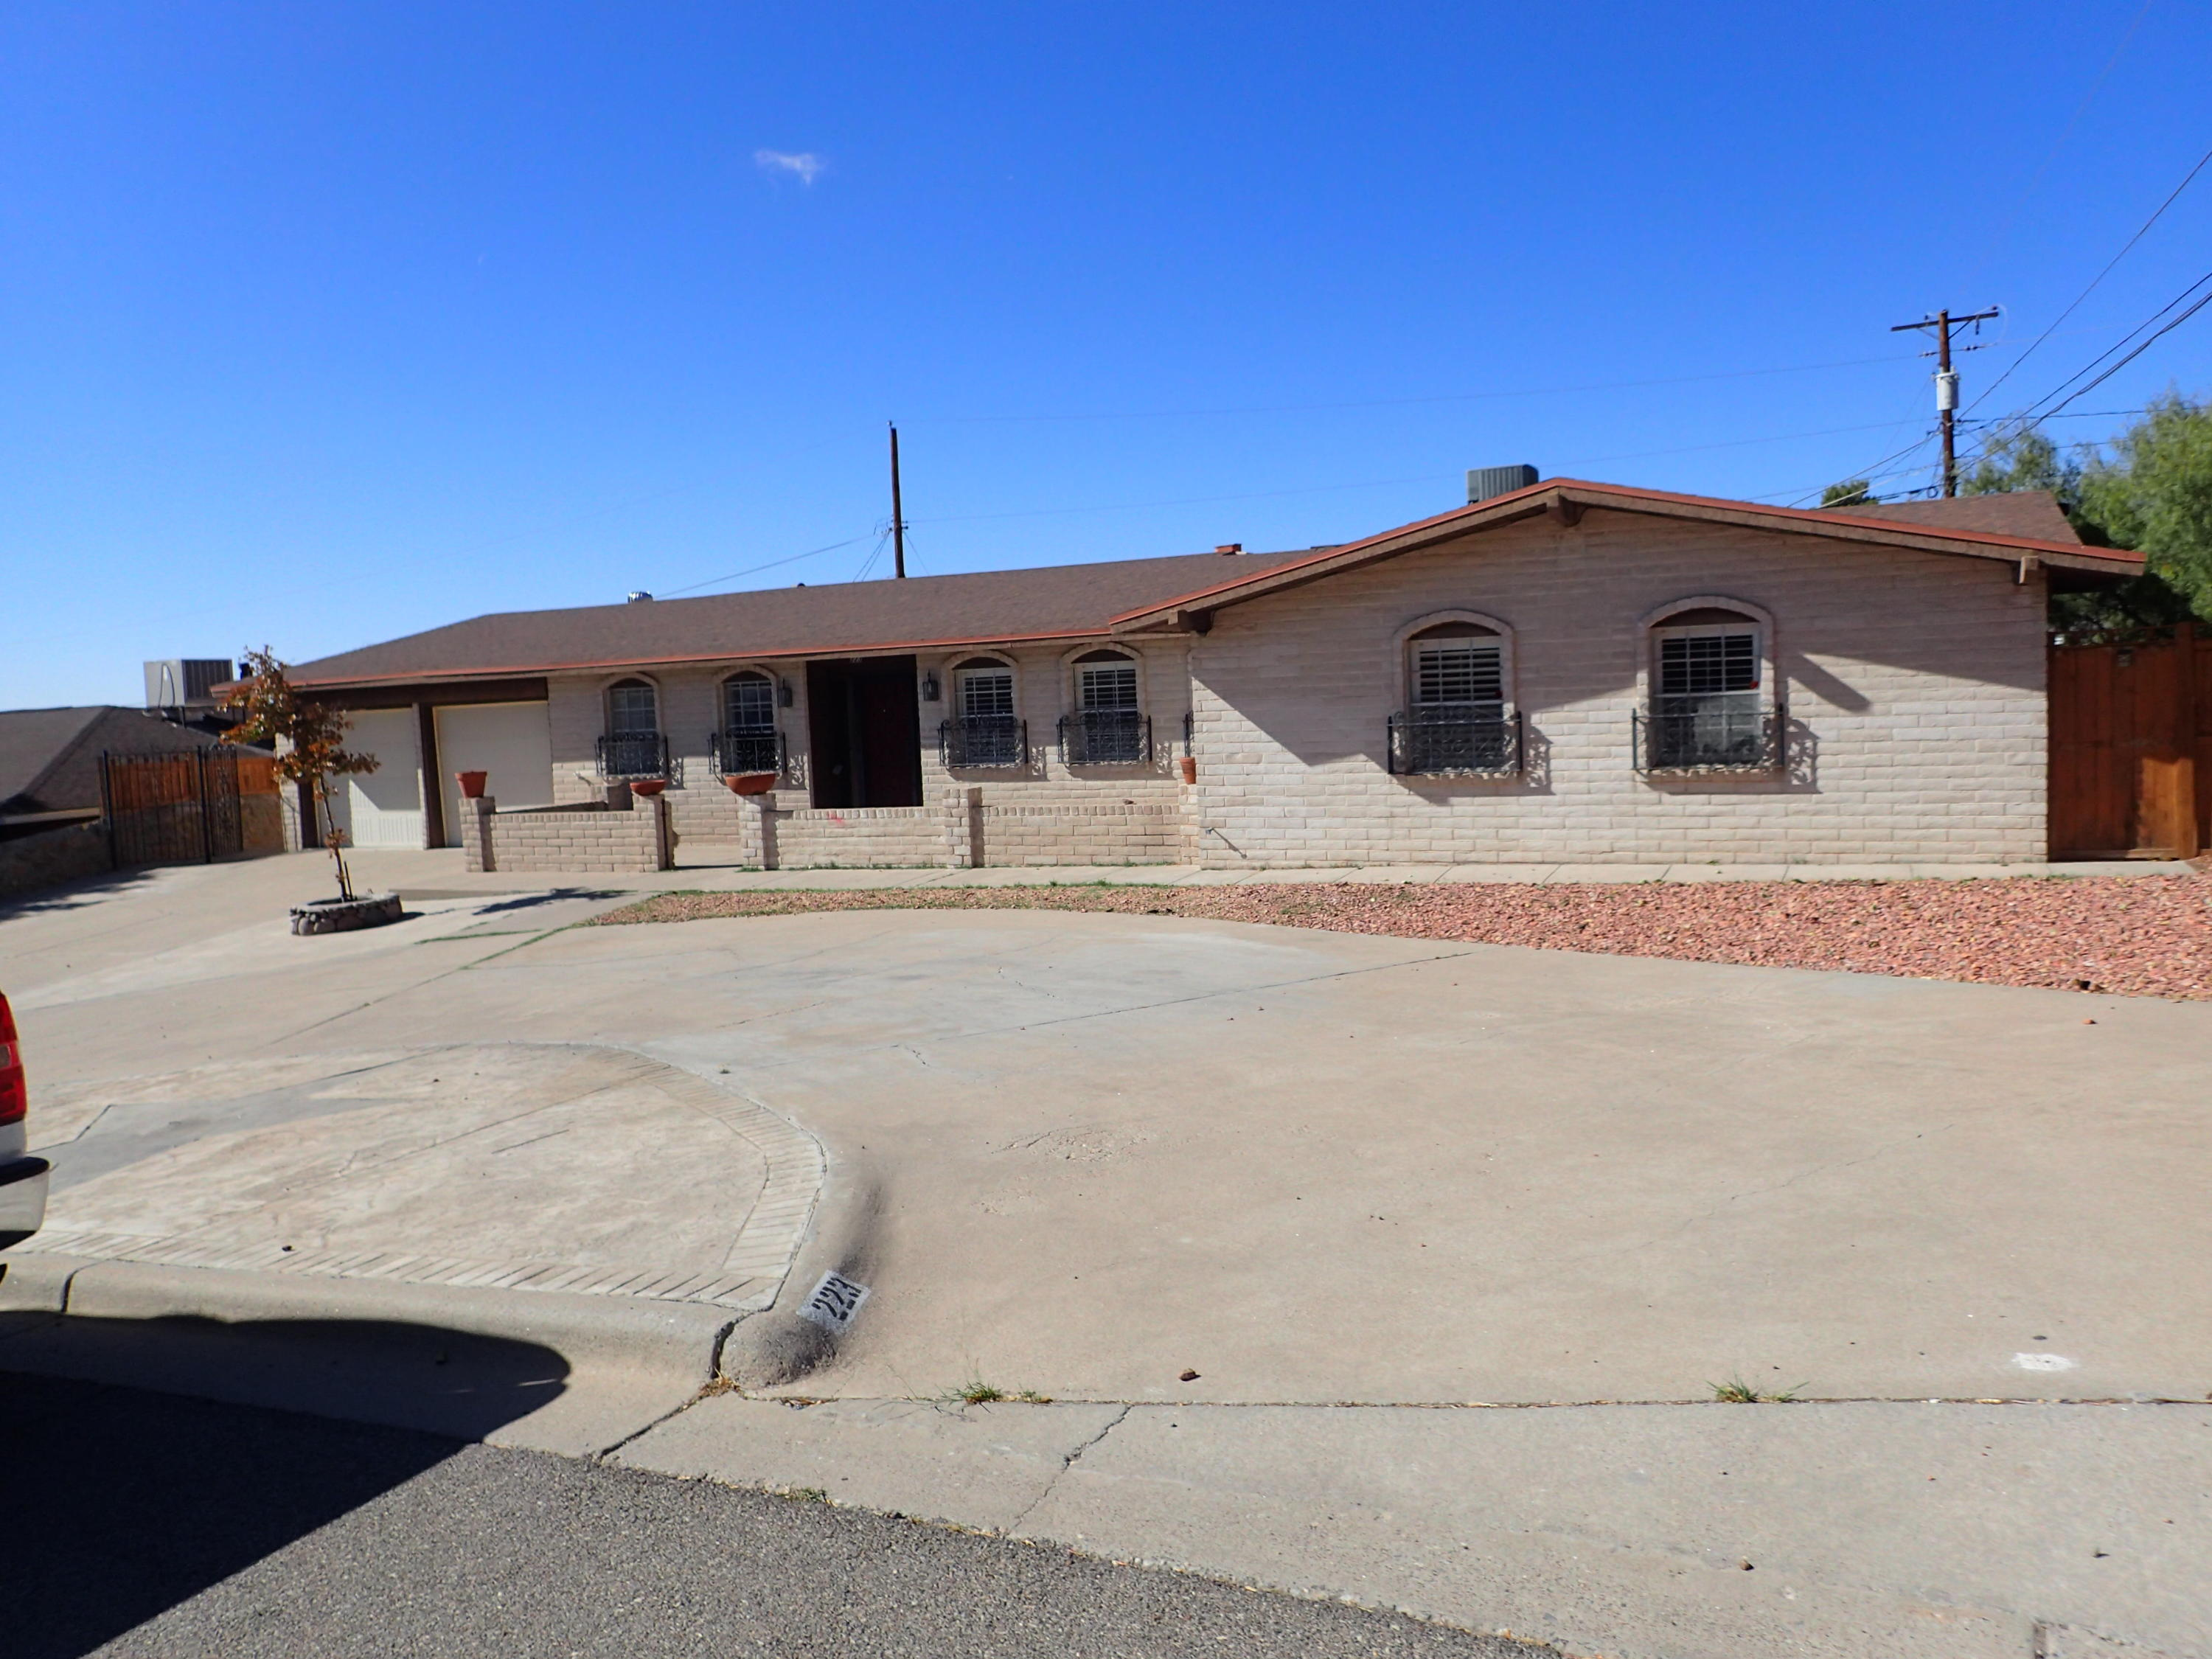 223 VISTA DEL REY, El Paso, Texas 79912, 5 Bedrooms Bedrooms, ,3 BathroomsBathrooms,Residential,For sale,VISTA DEL REY,836978